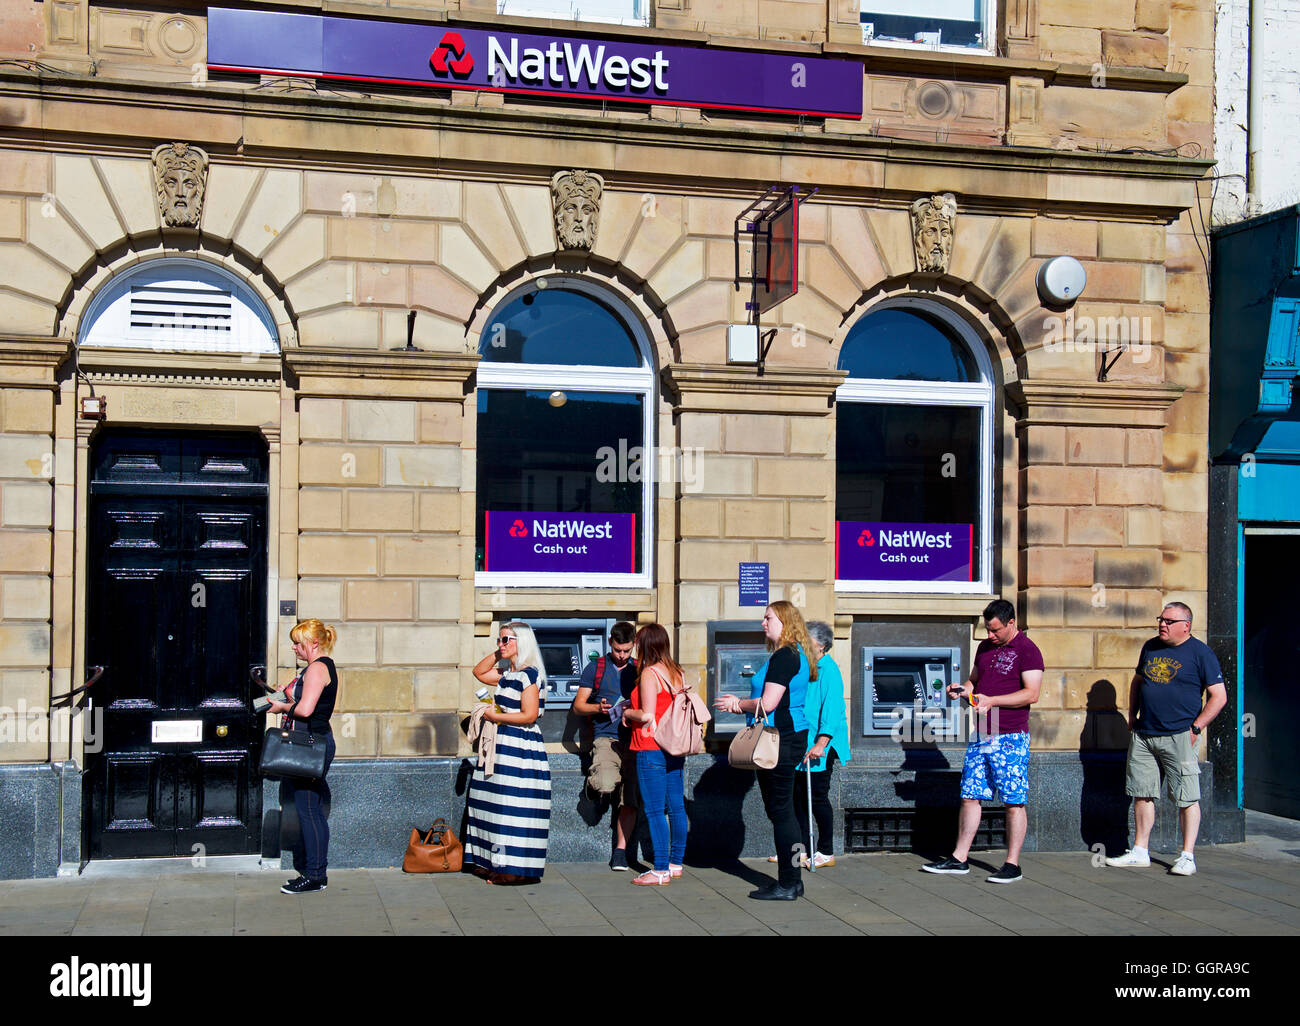 People queueing up, waiting for the NatWest bank to open, Darlington, County Durham, England UK Stock Photo